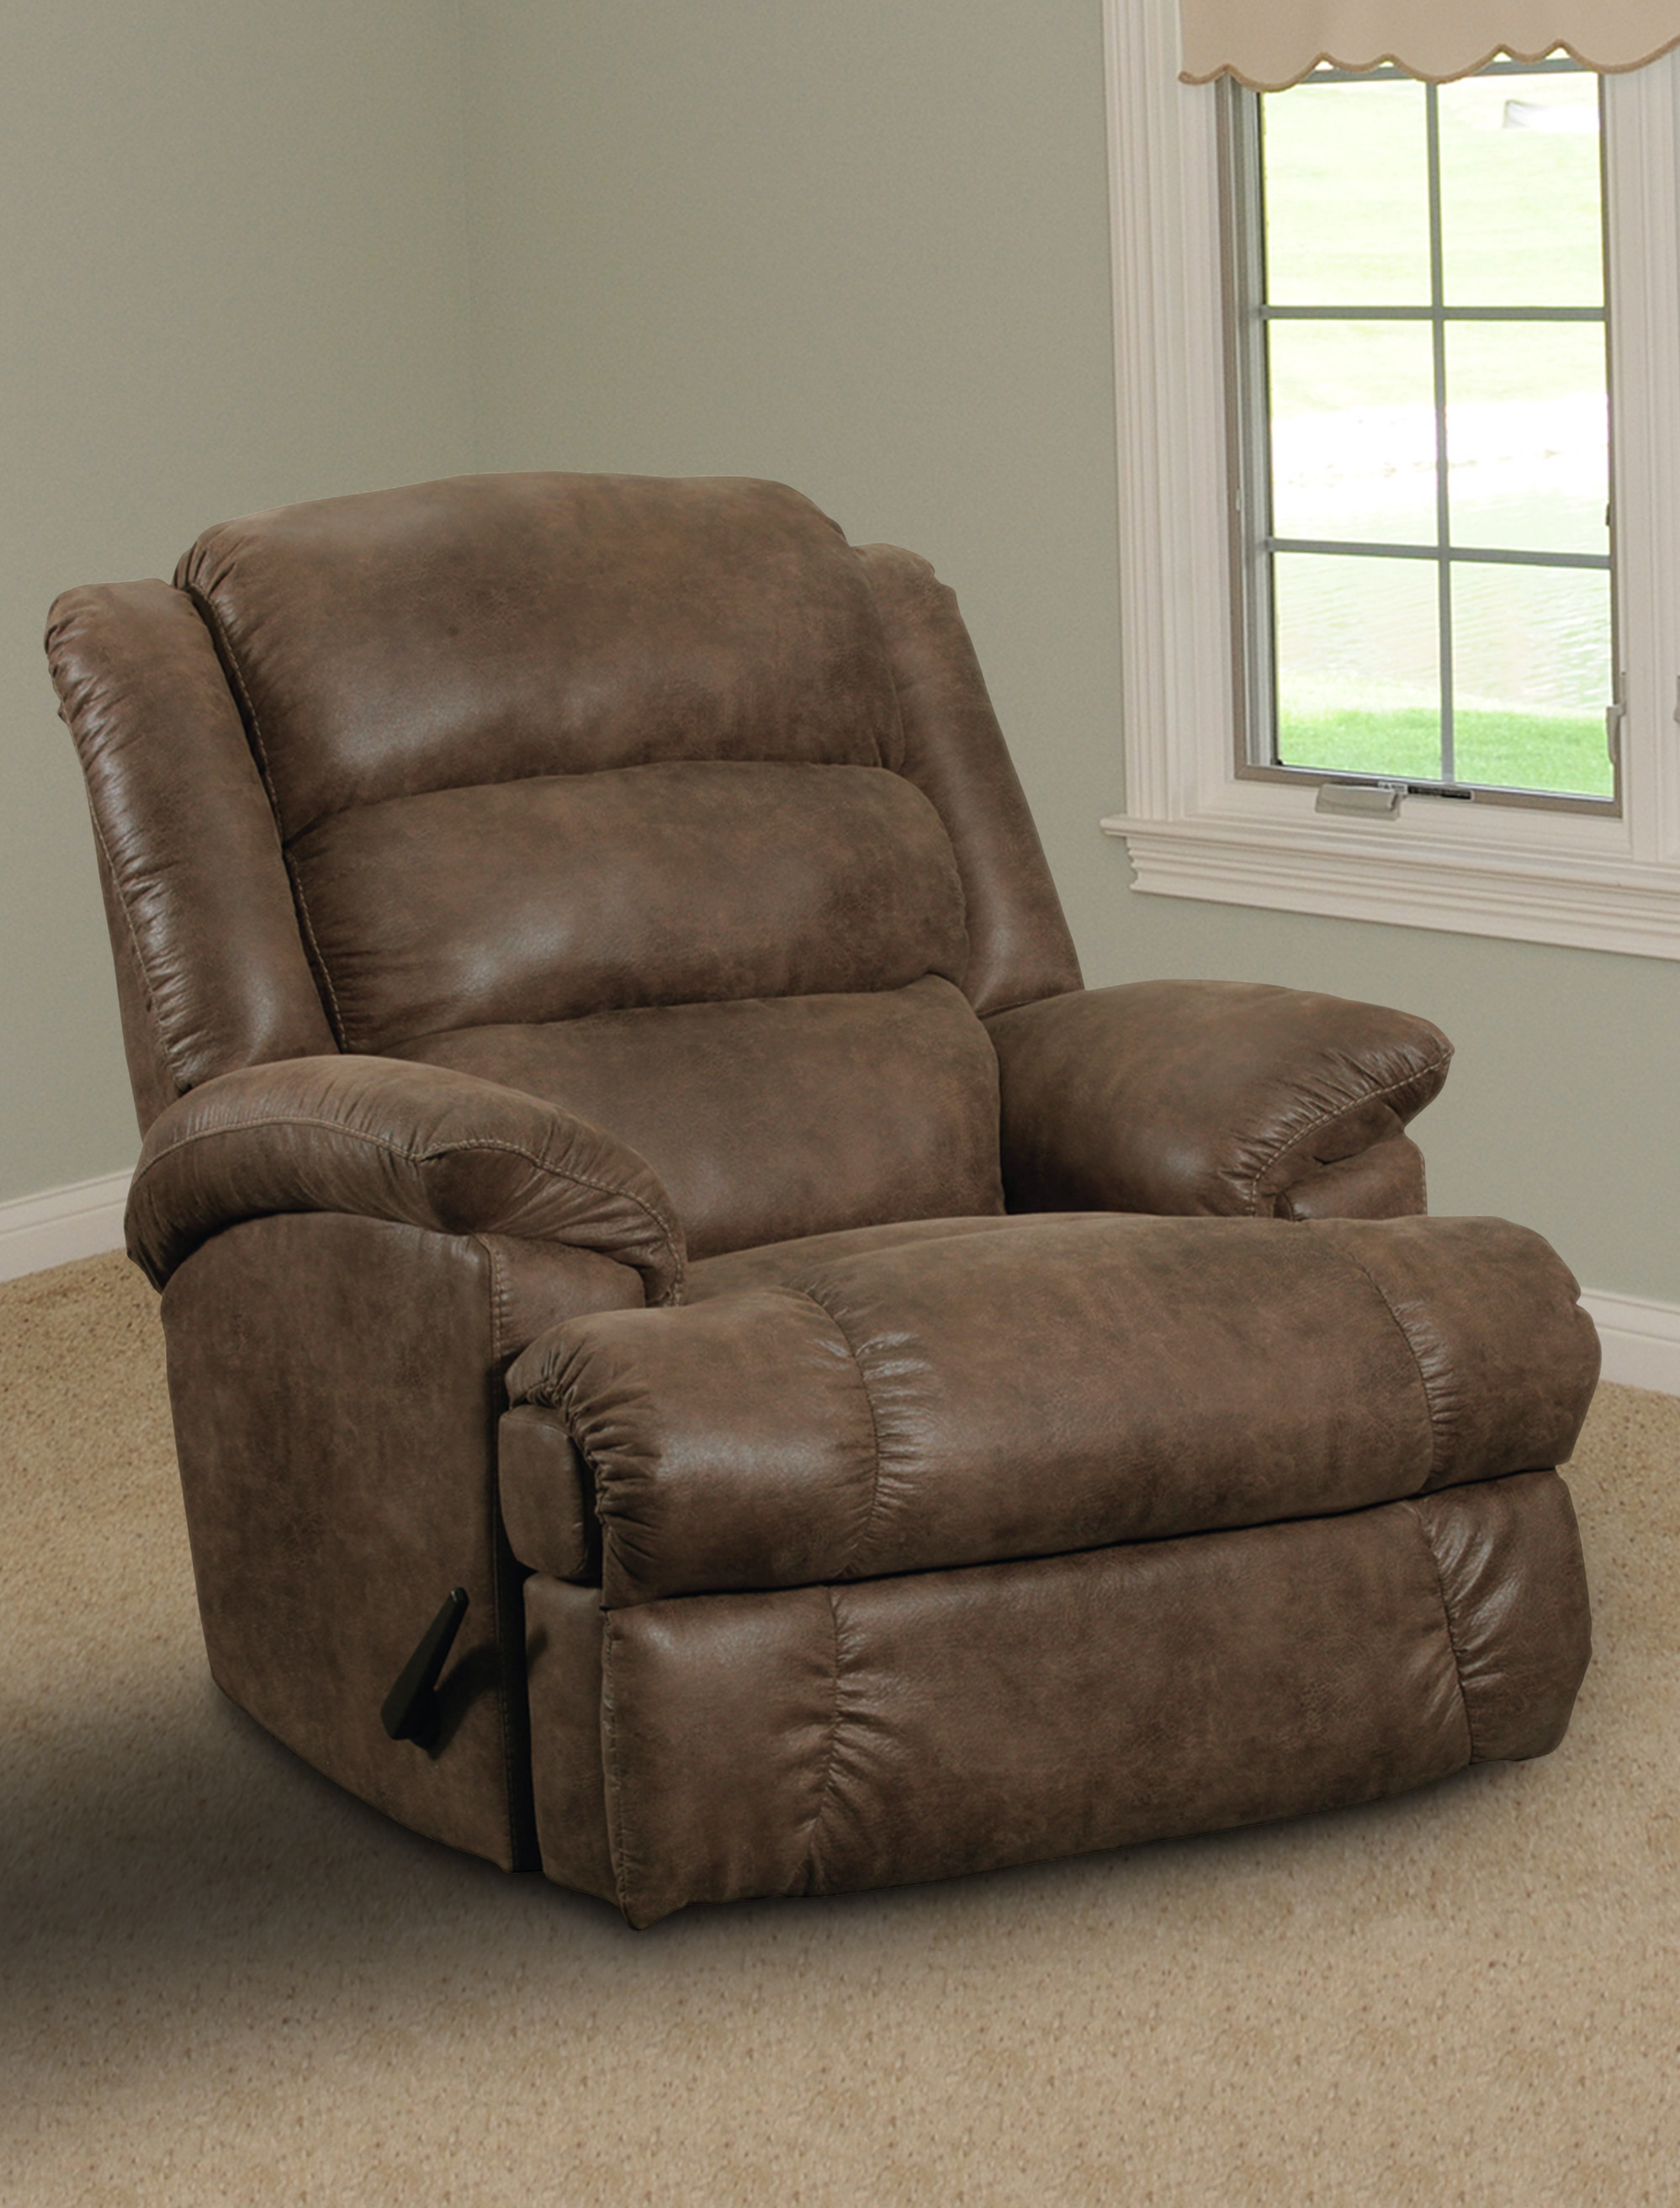 Lane® Furniture ComfortKing® Rocker Recliner & Heavy Duty Recliners from Destination XL islam-shia.org